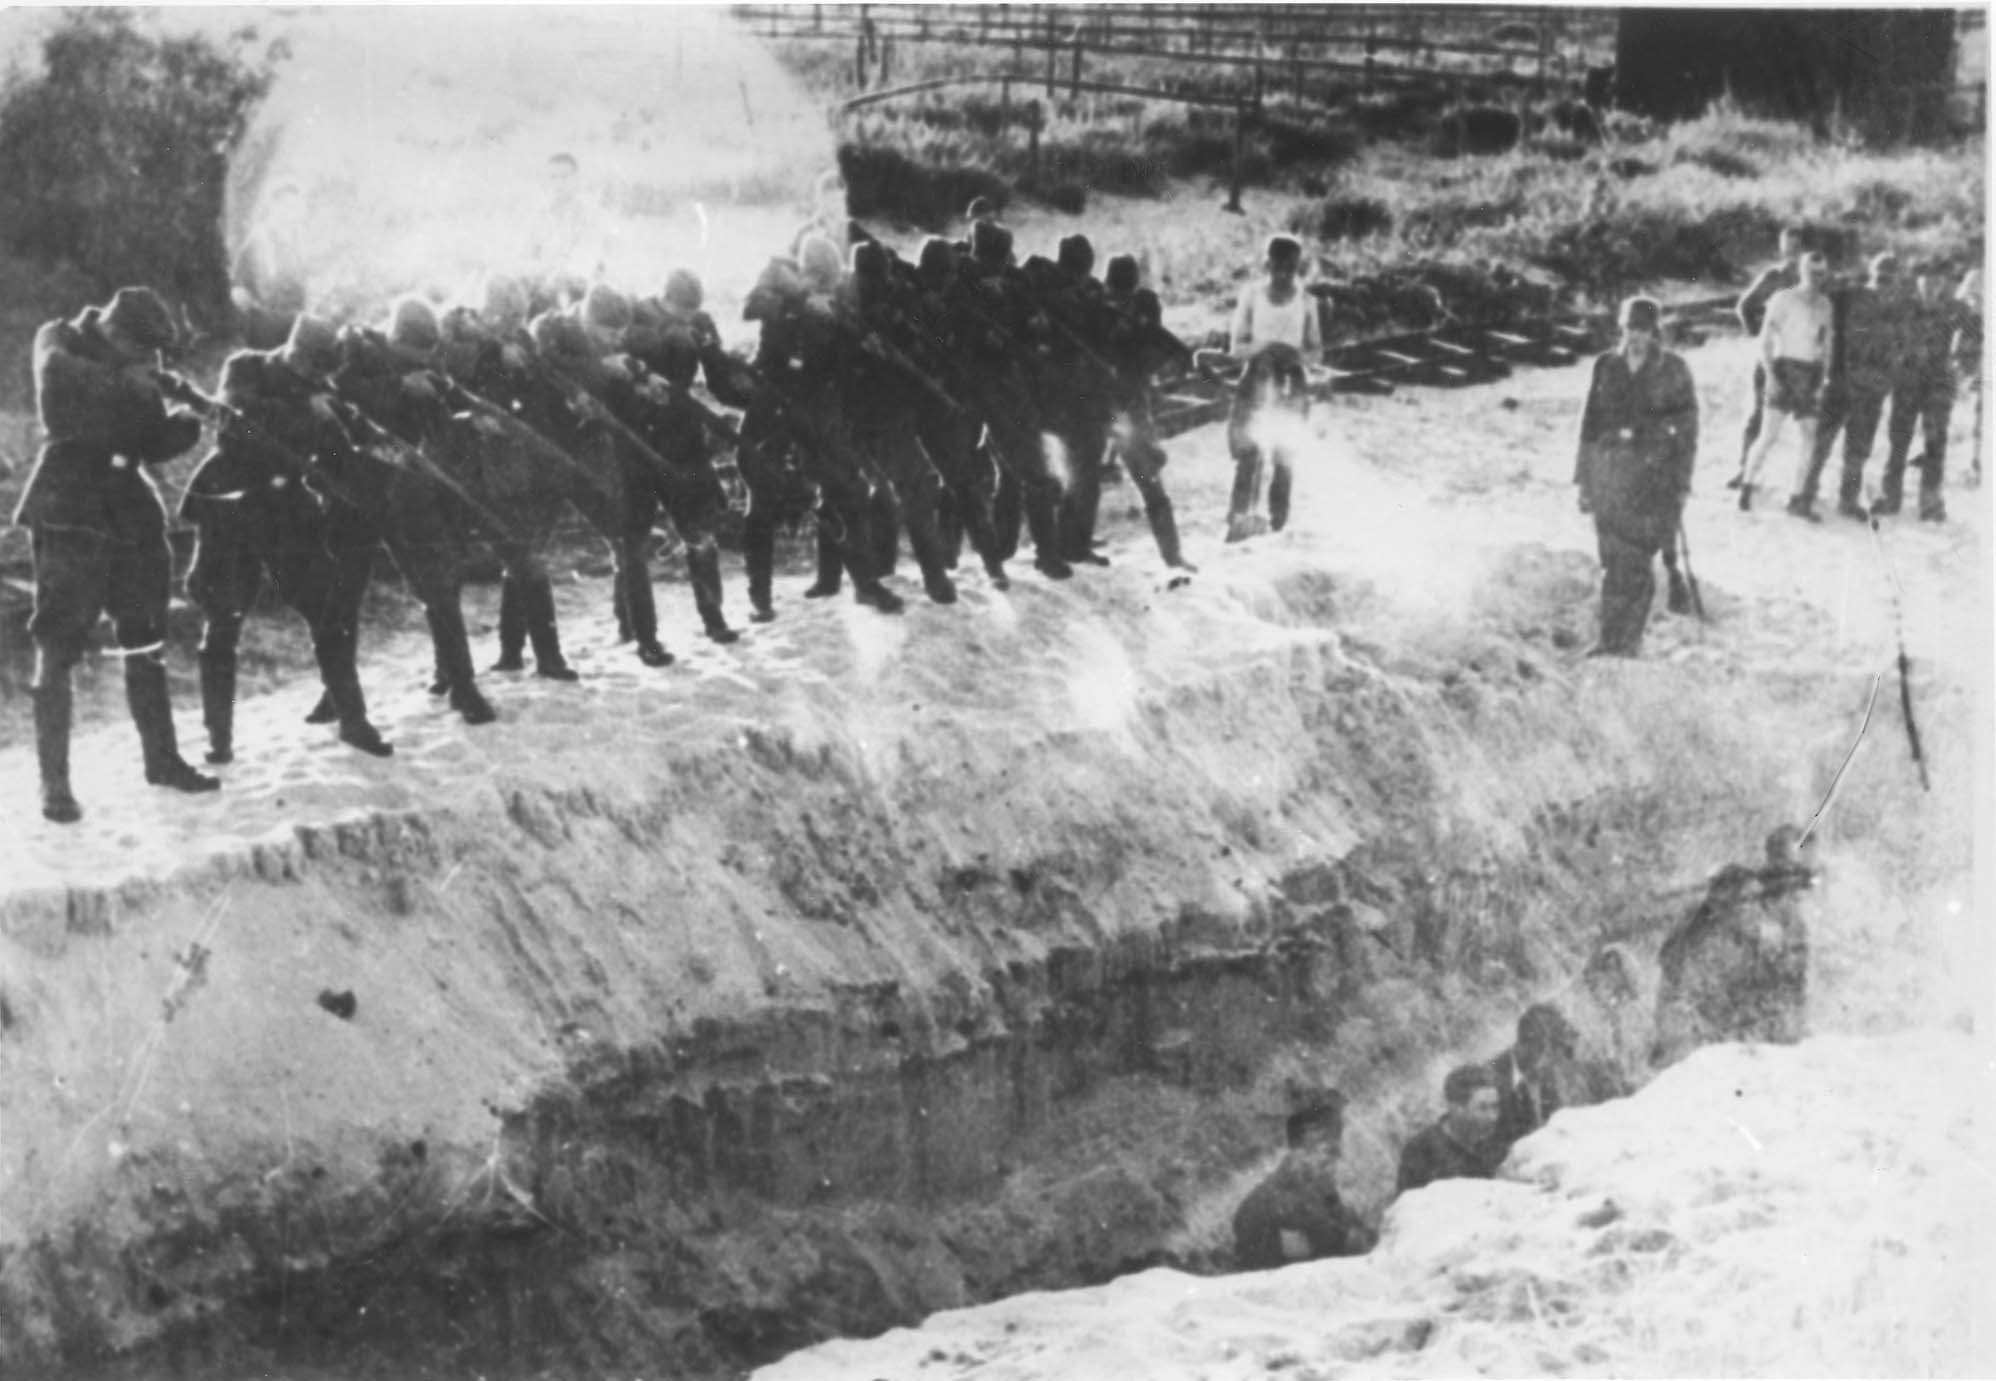 Einsatzgruppen soldiers shooting Jews who are in a ditch